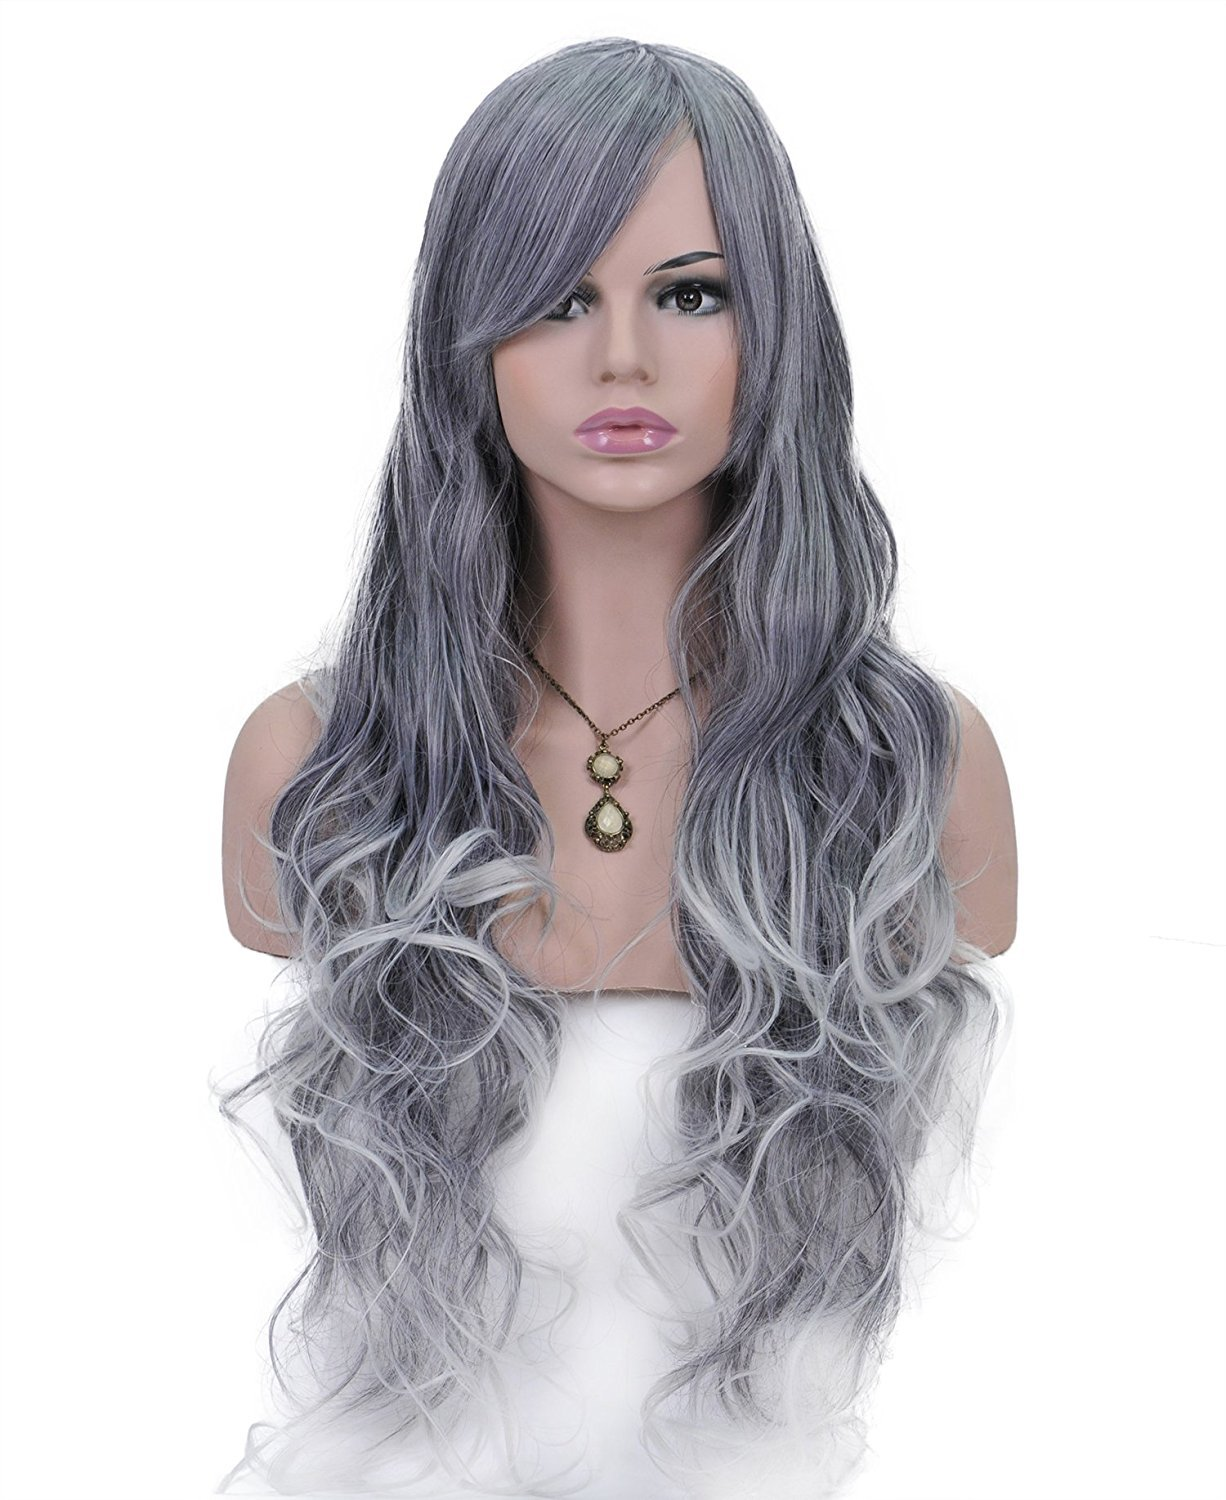 Spretty Beautiful Long Curly Heat Resistant Anime Fashion Wavy Wigs with Bangs for Cosplay Daily Party (Silver Grey)